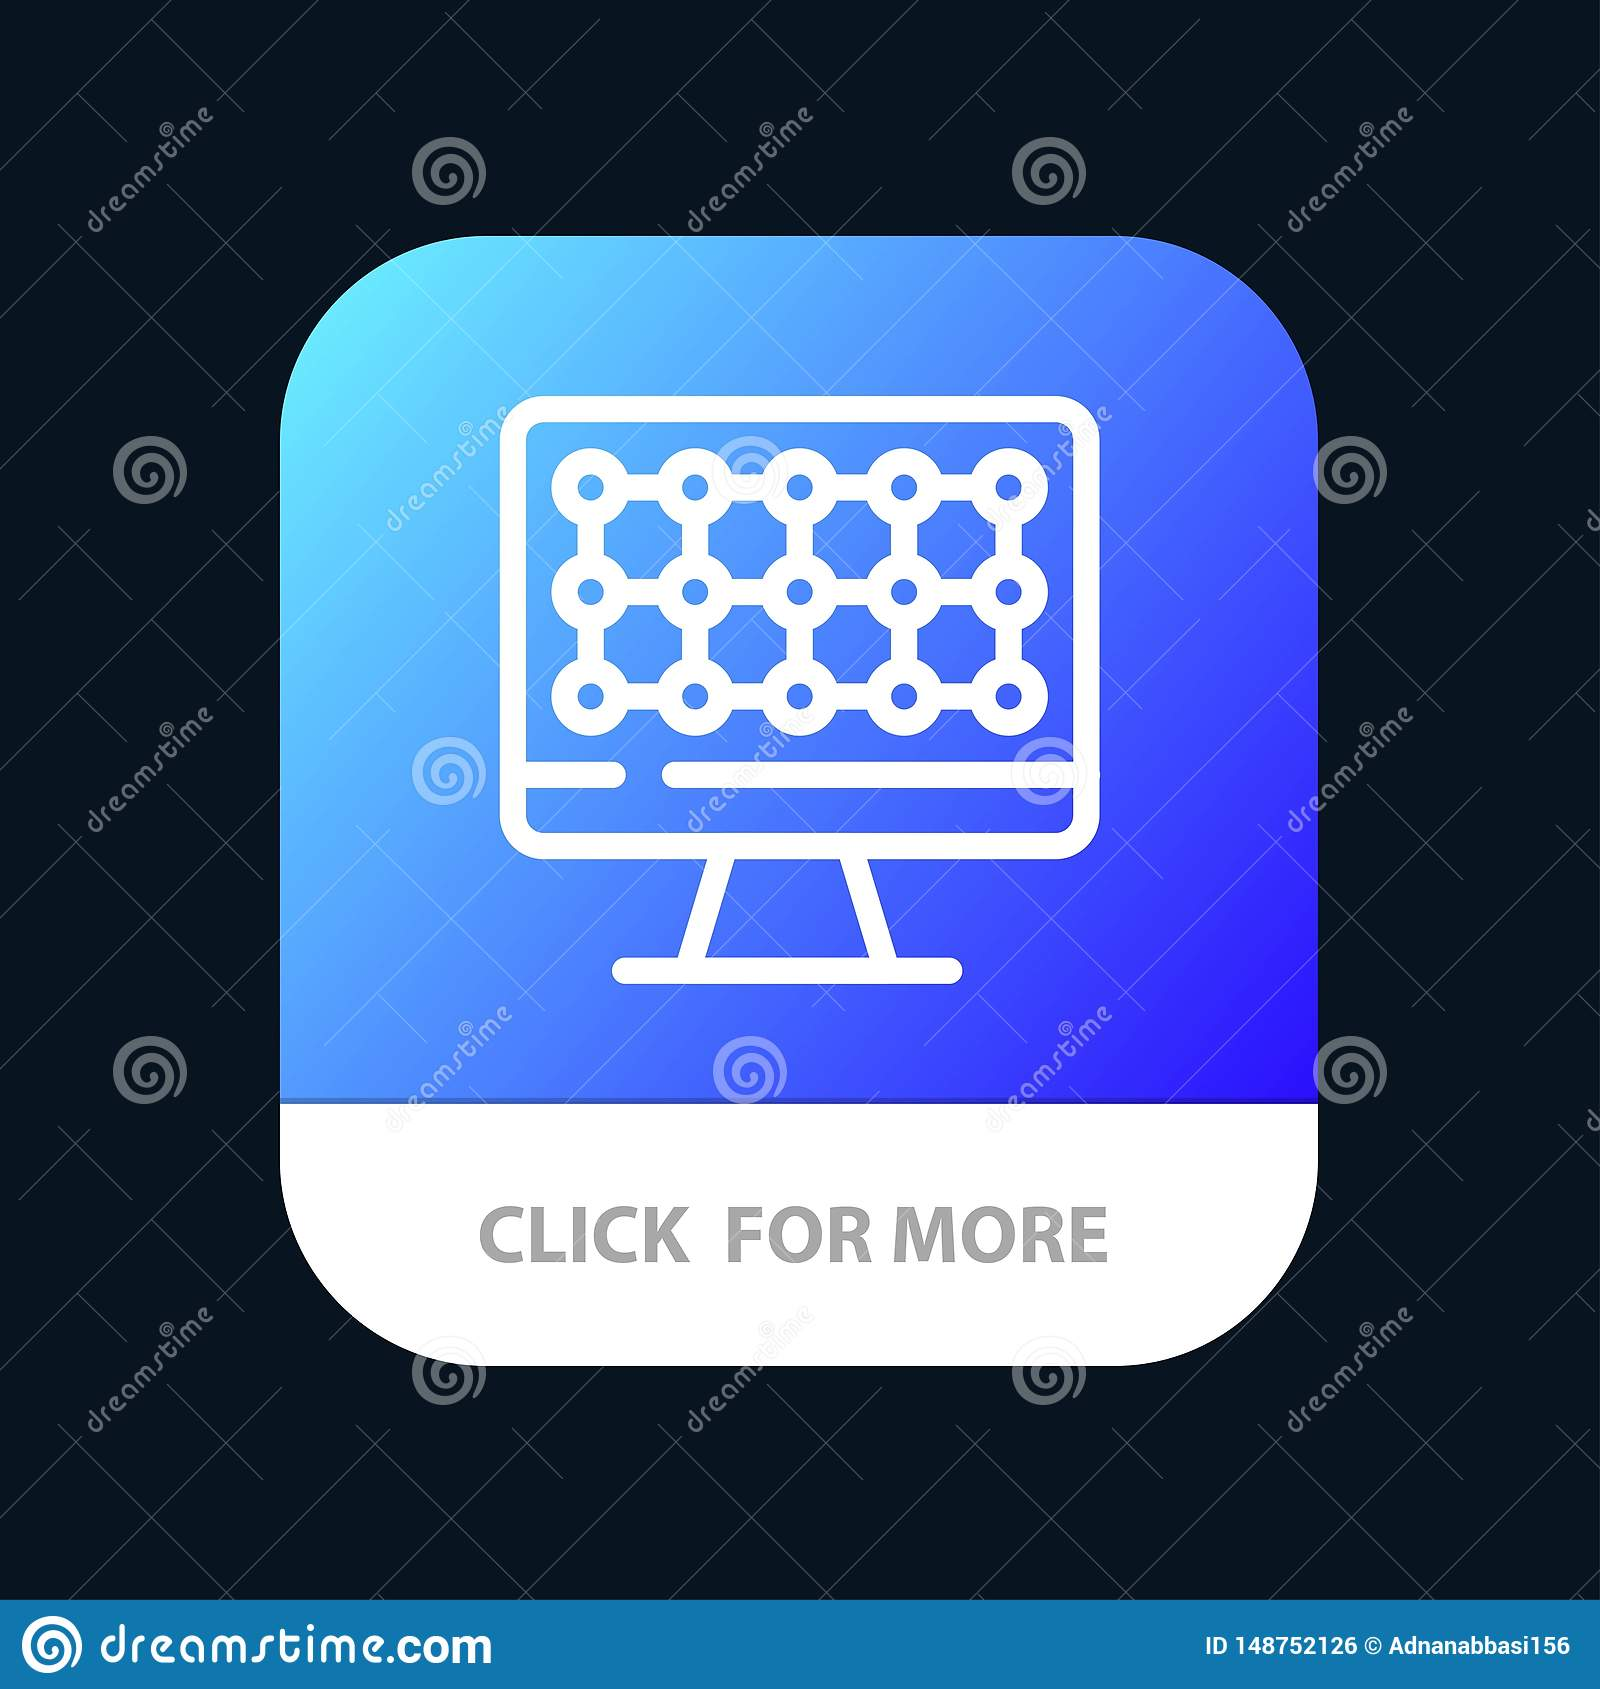 Computer, Technology, Hardware Mobile App Button. Android and IOS Line Version